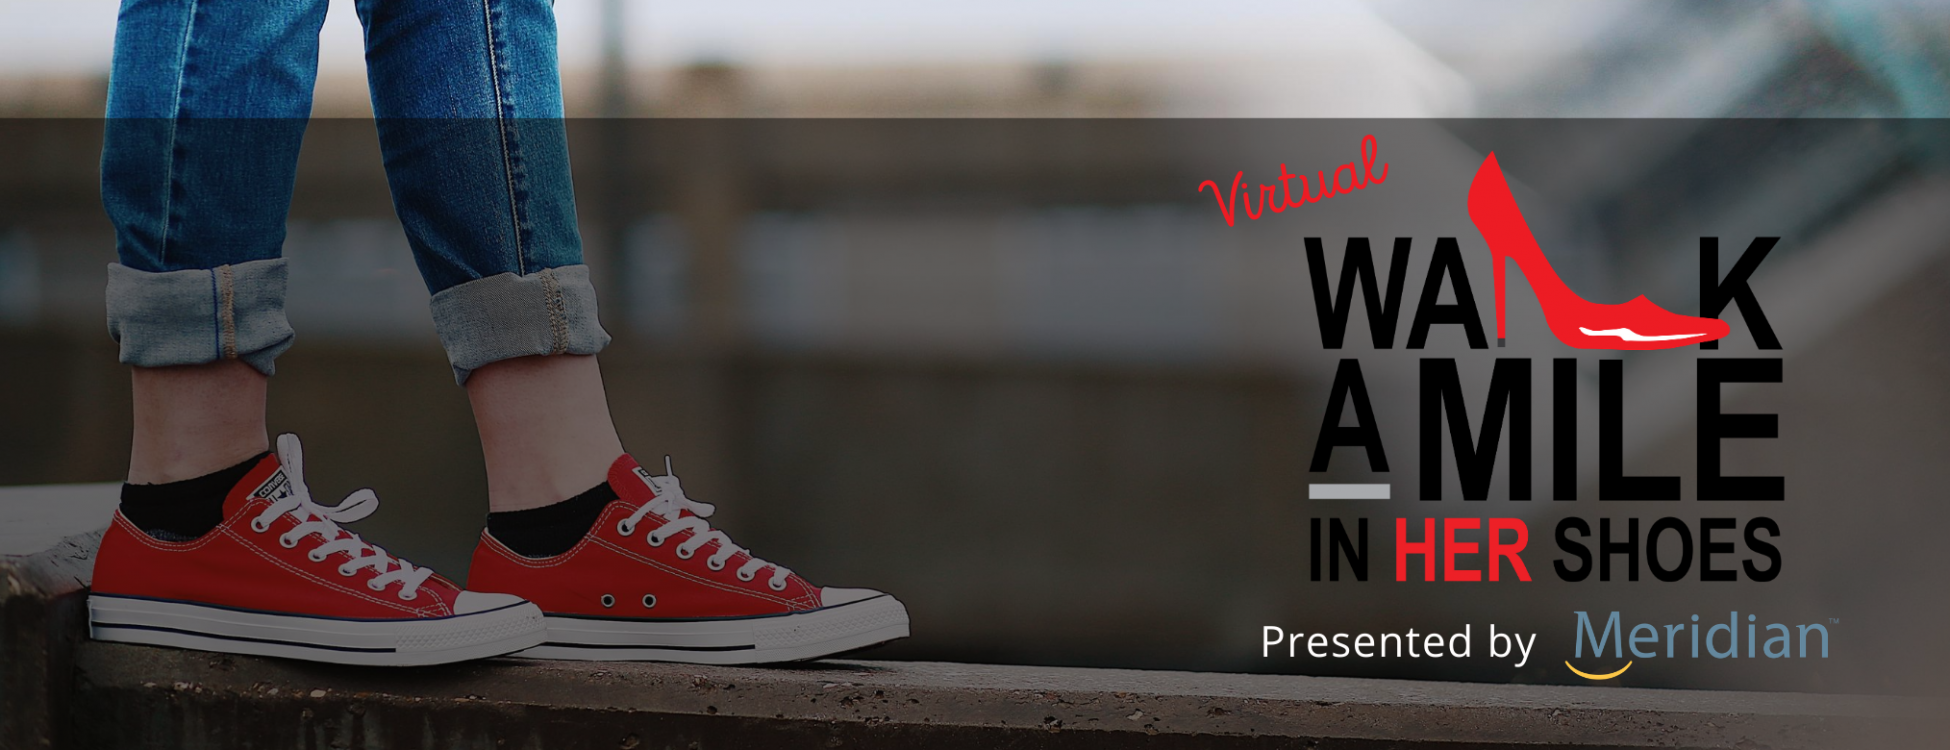 Virtual Walk A Mile In Her Shoes, presented by Meridian